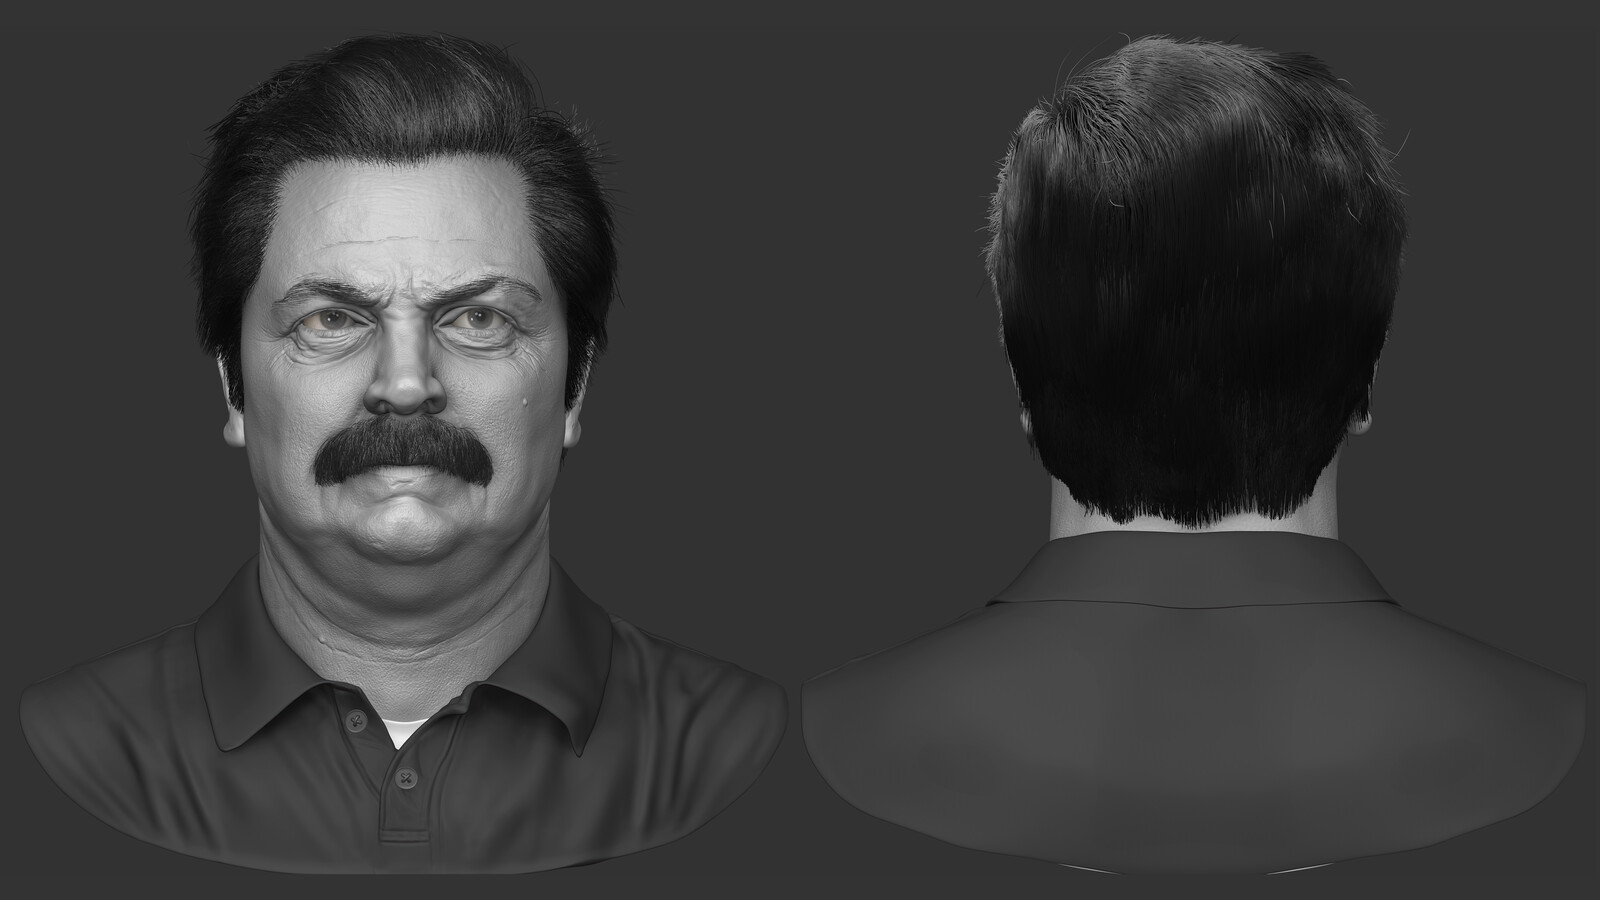 Ron Swanson - Nick Offerman